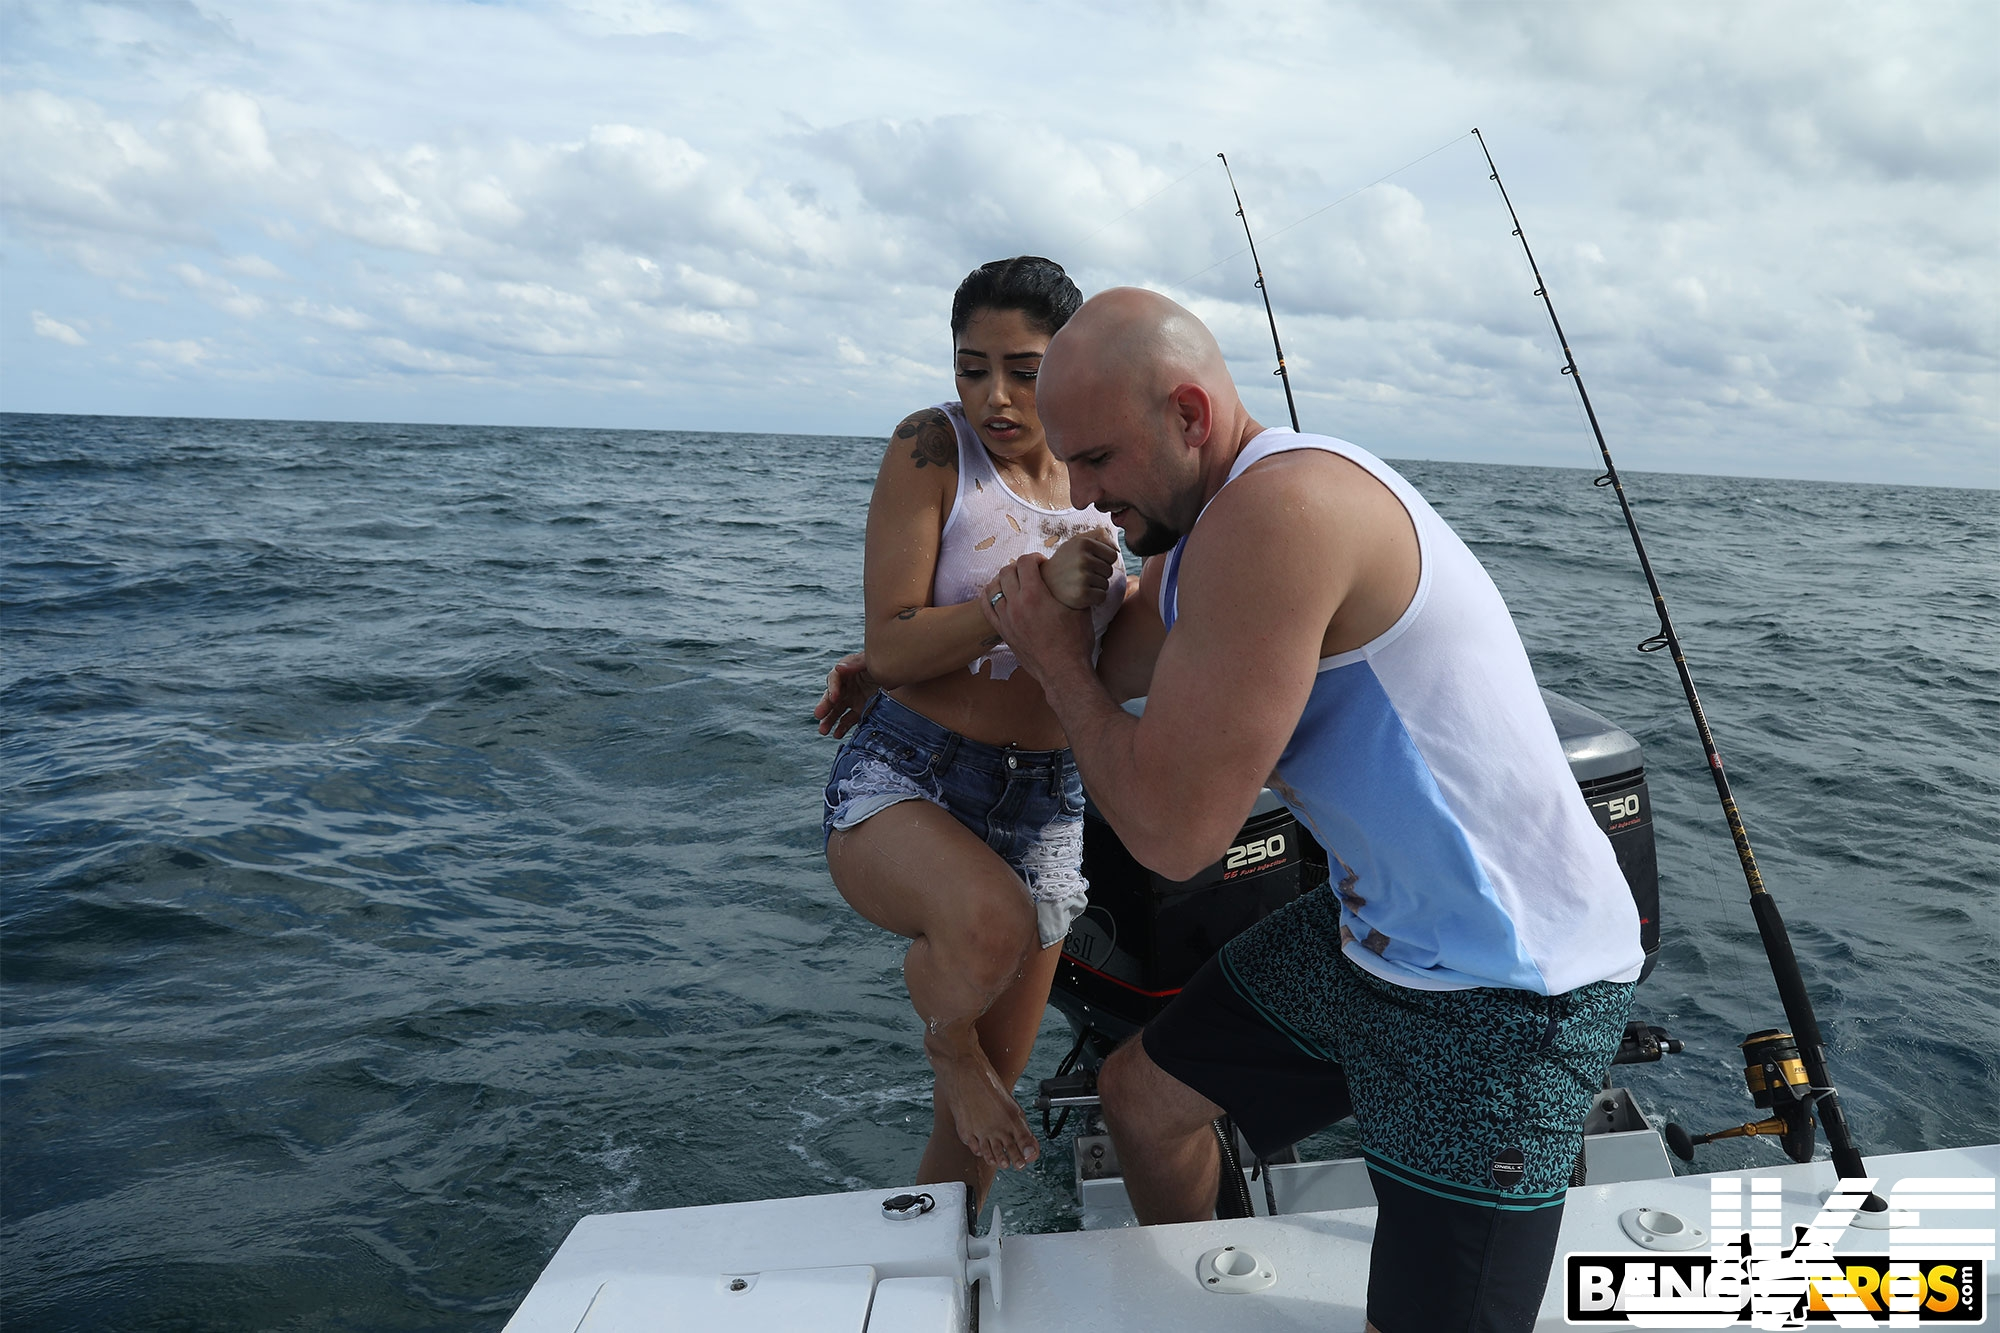 [TEEN][PUBLIC]Bangbros – Bangbros – Cuban Hottie Gets Rescued at Sea - Vanessa Sky